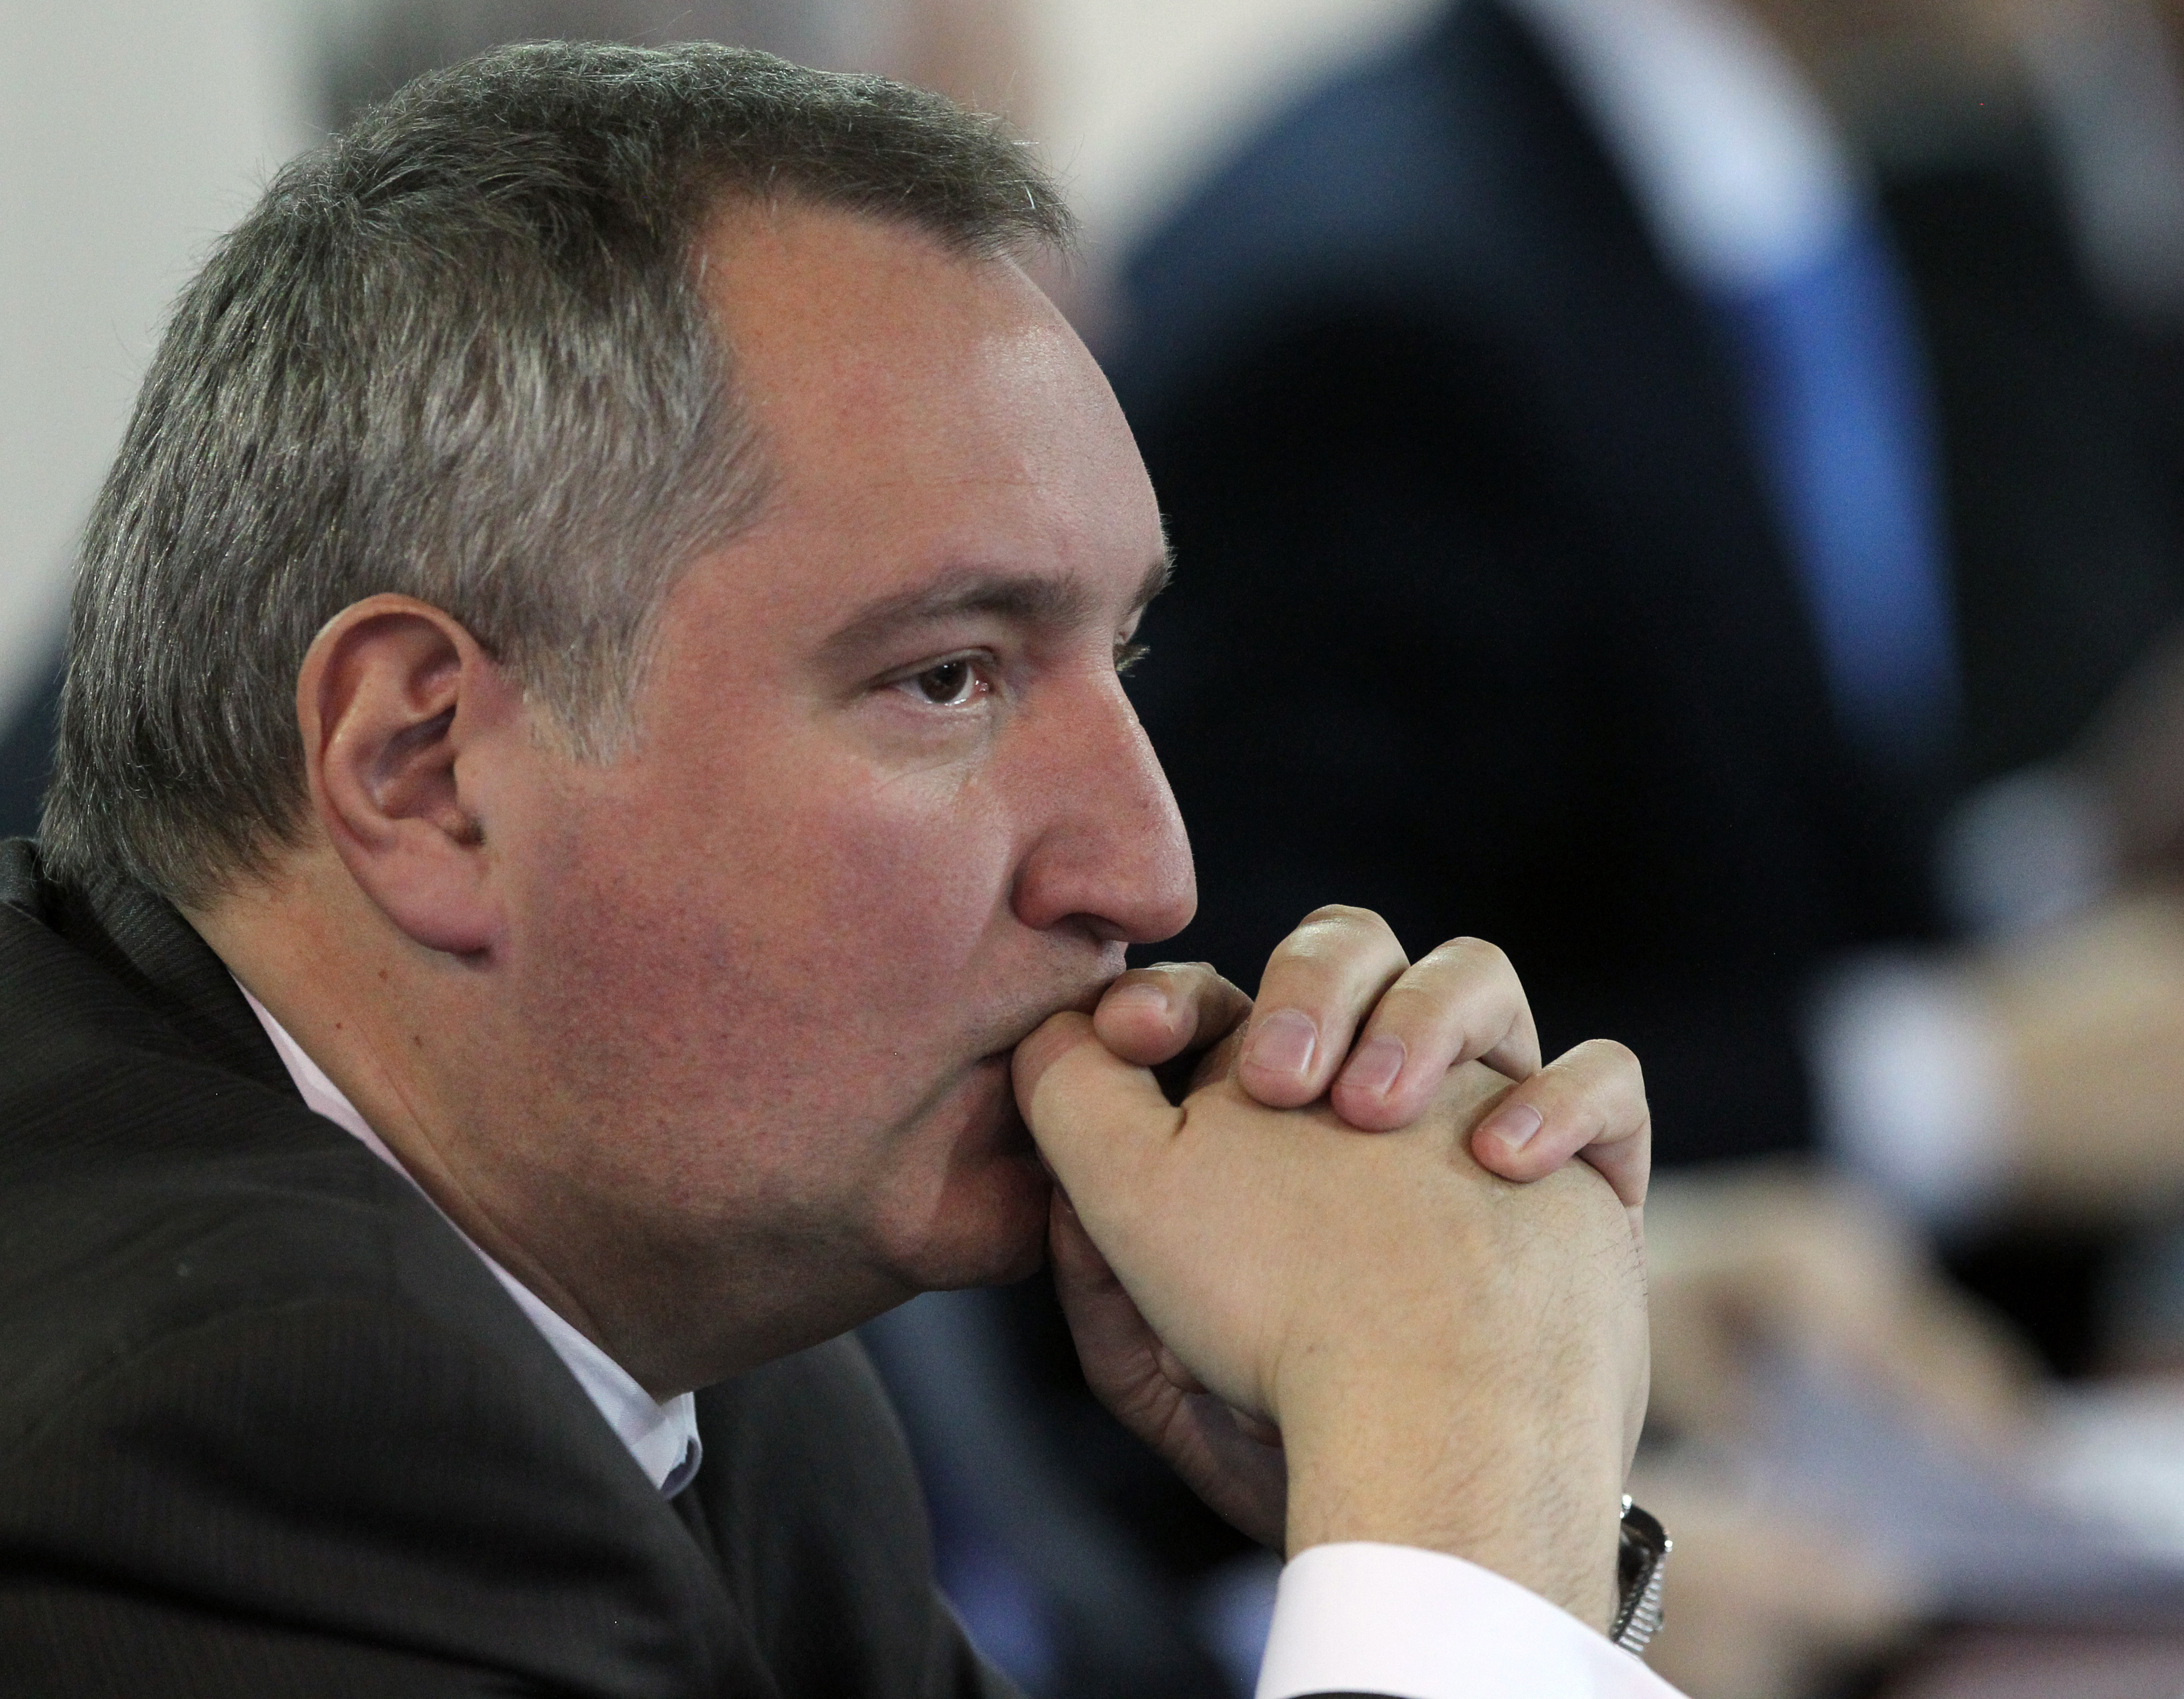 Russian Deputy Prime Minister Dmitry Rogozin attends a meeting at the KBP Instrument Bureau, a high-precious weapon plant in Tula, 160 km. south of Moscow, on Jan. 20, 2014